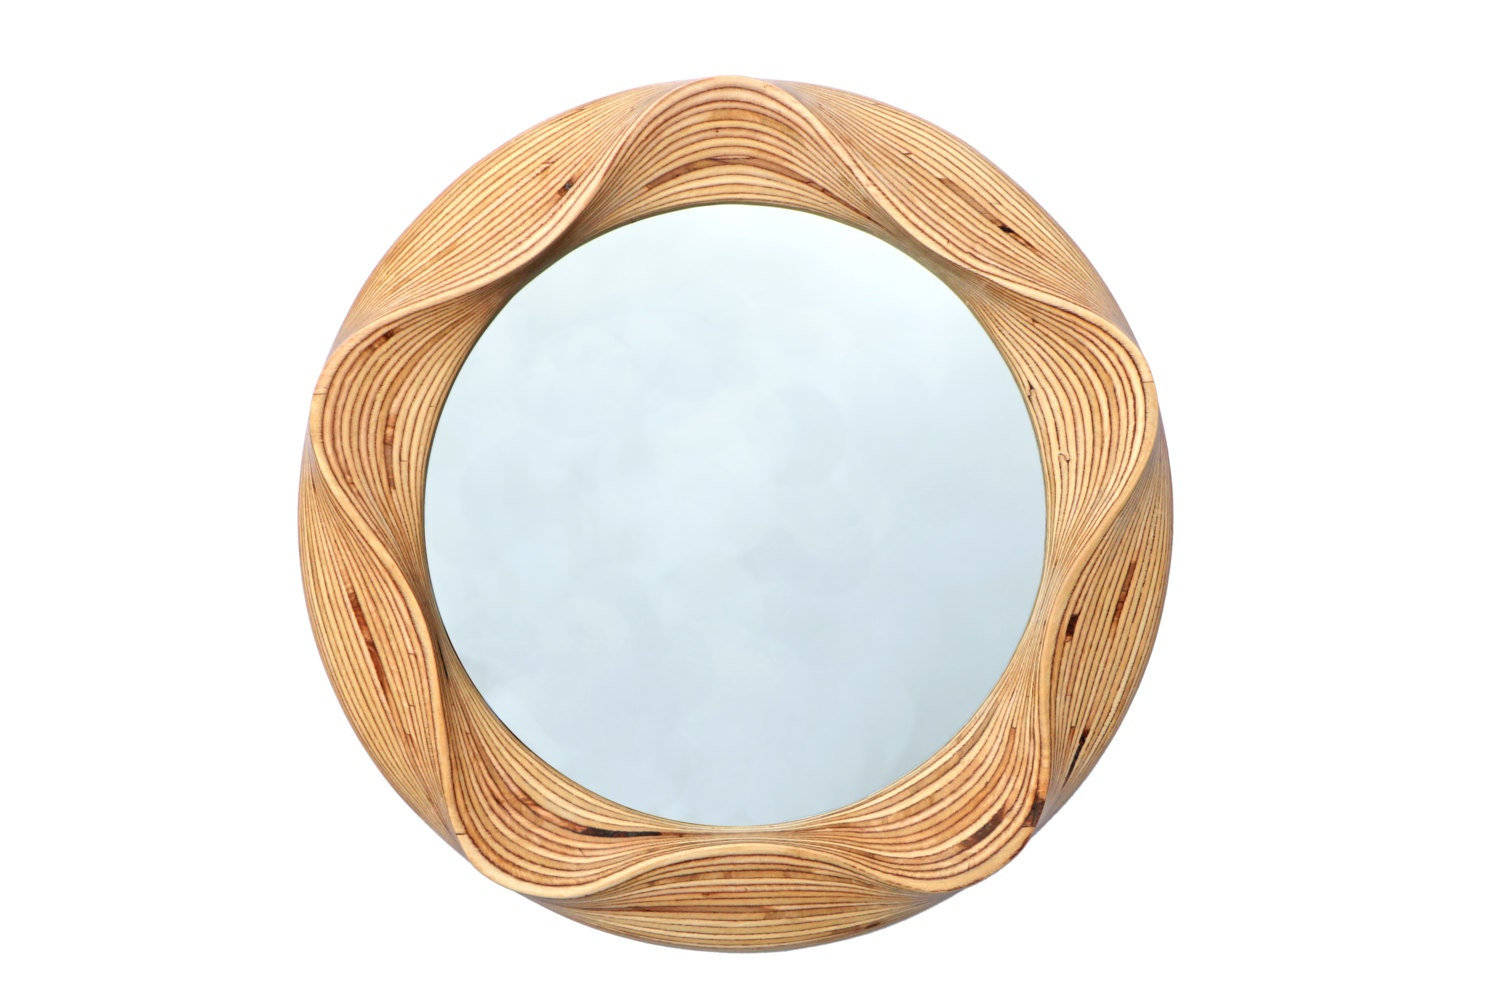 Round wall mirror wooden decorative mirror for bathroom for Round wood mirror